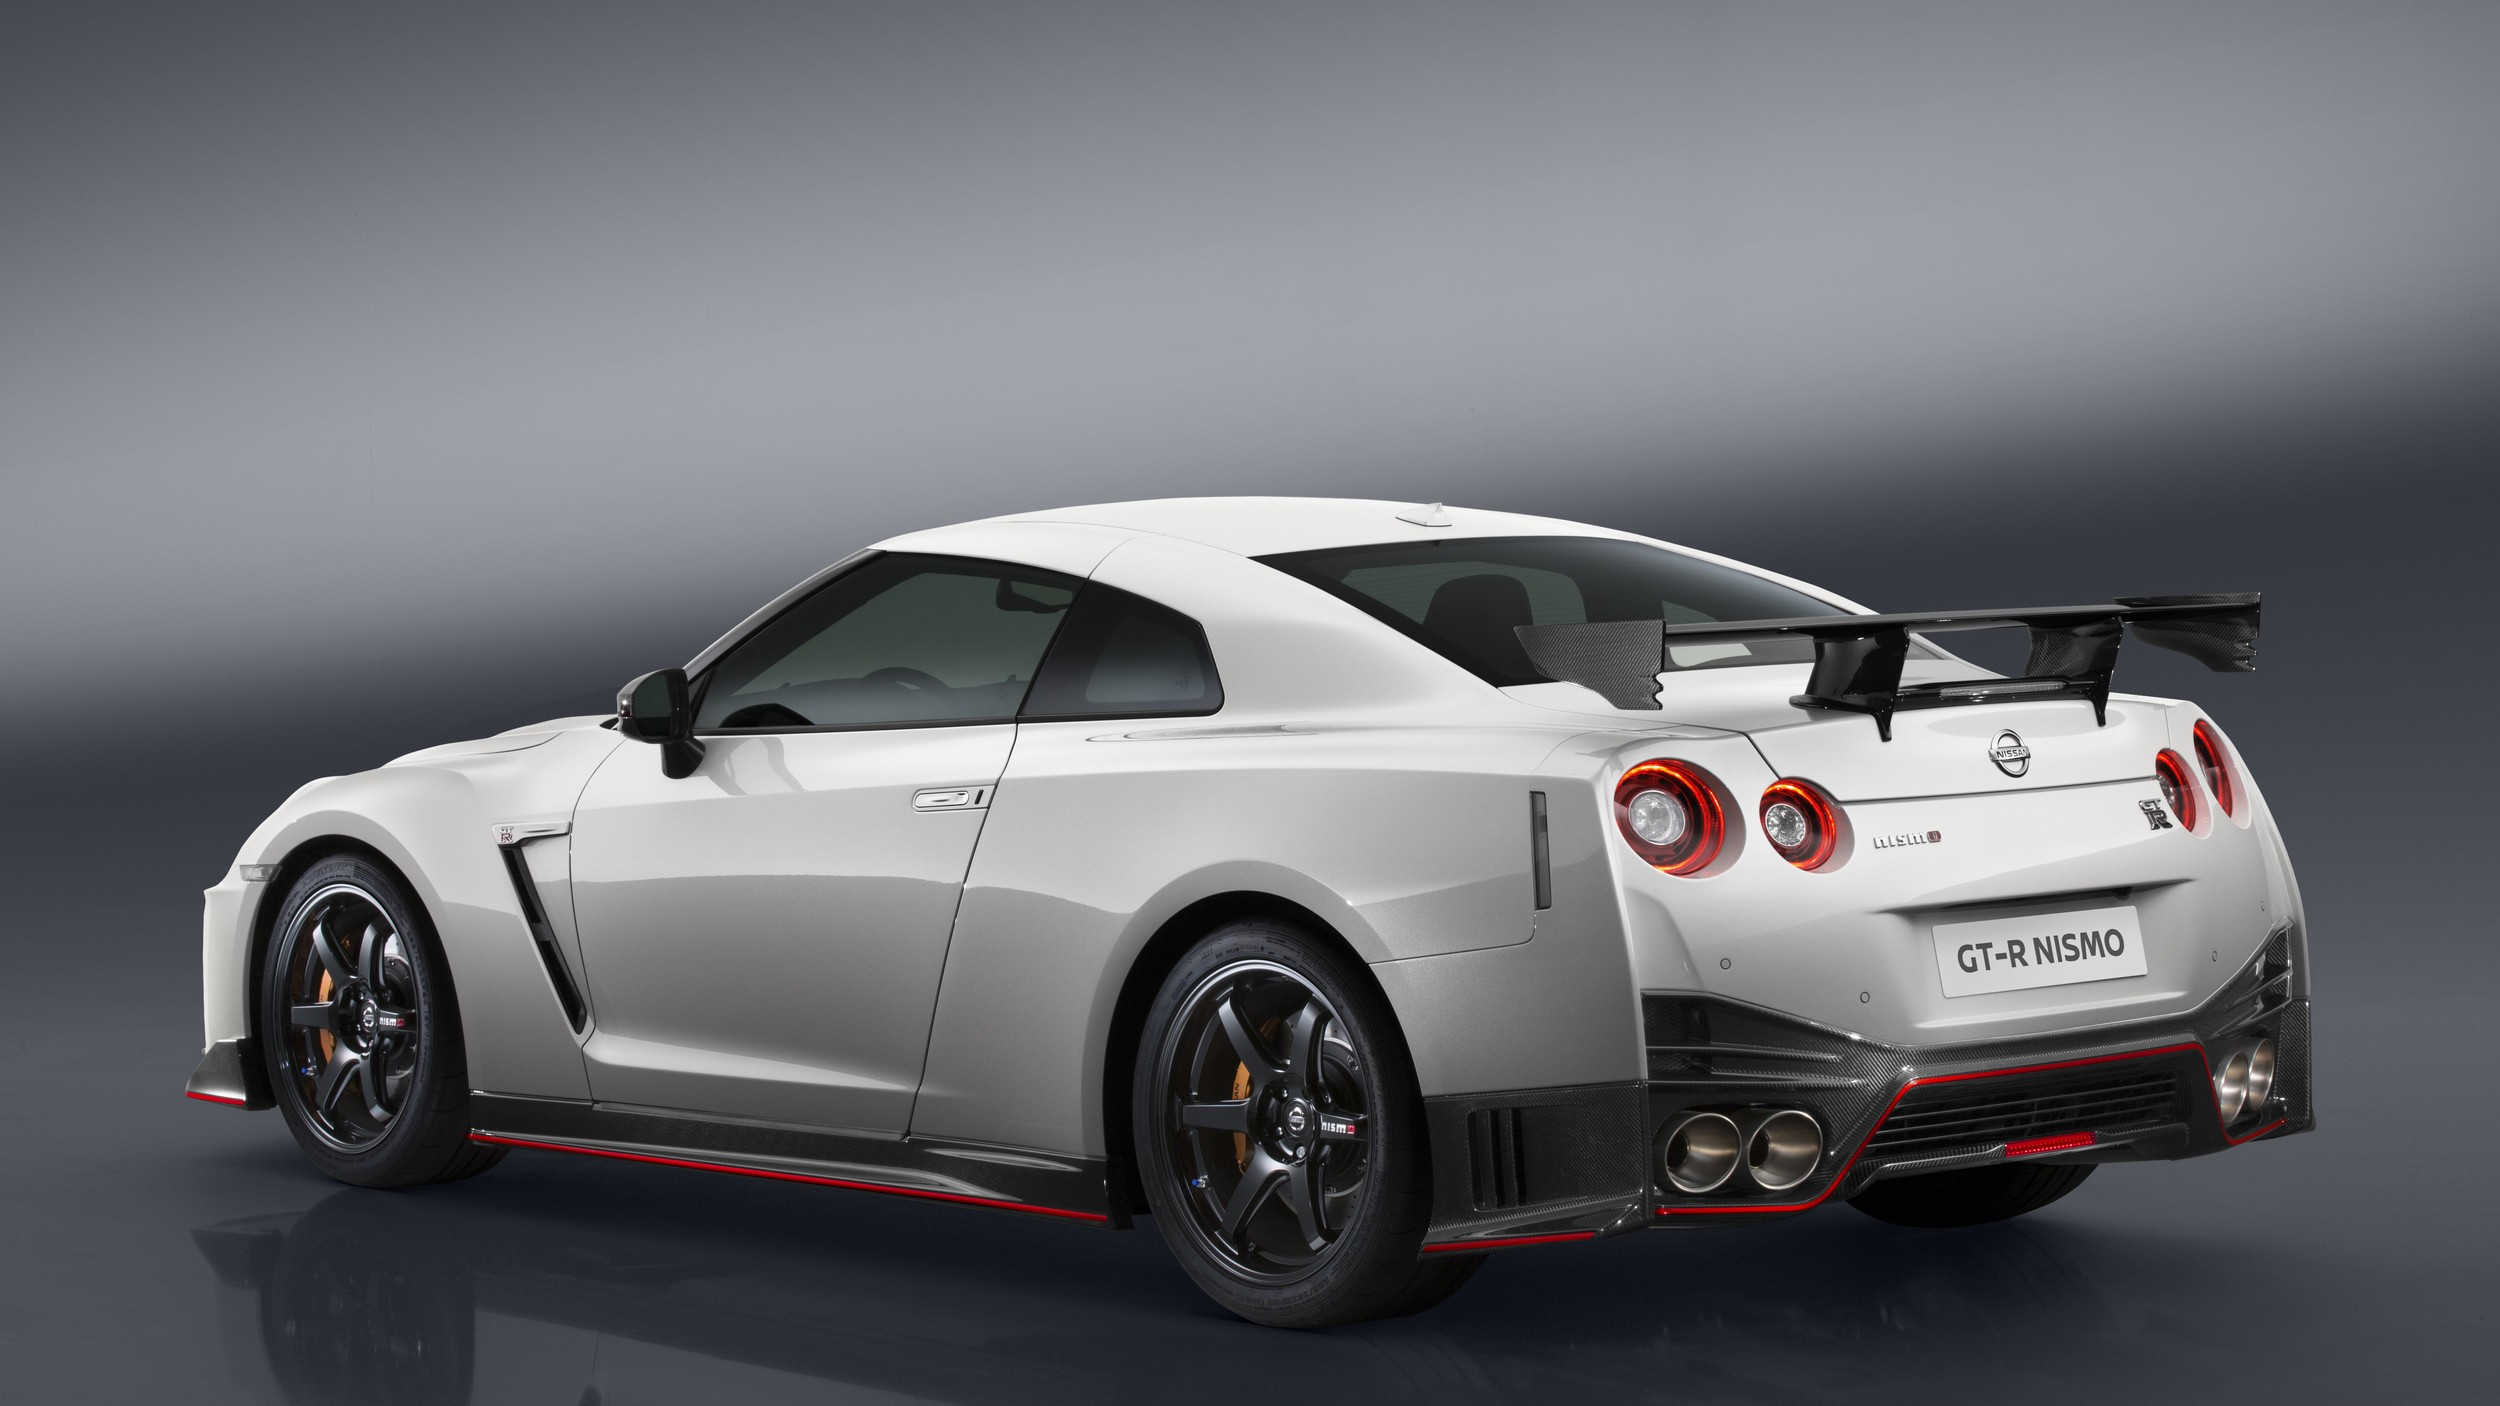 GT-R Nismo Out in November. New Nissan Tiida Also Getting ...